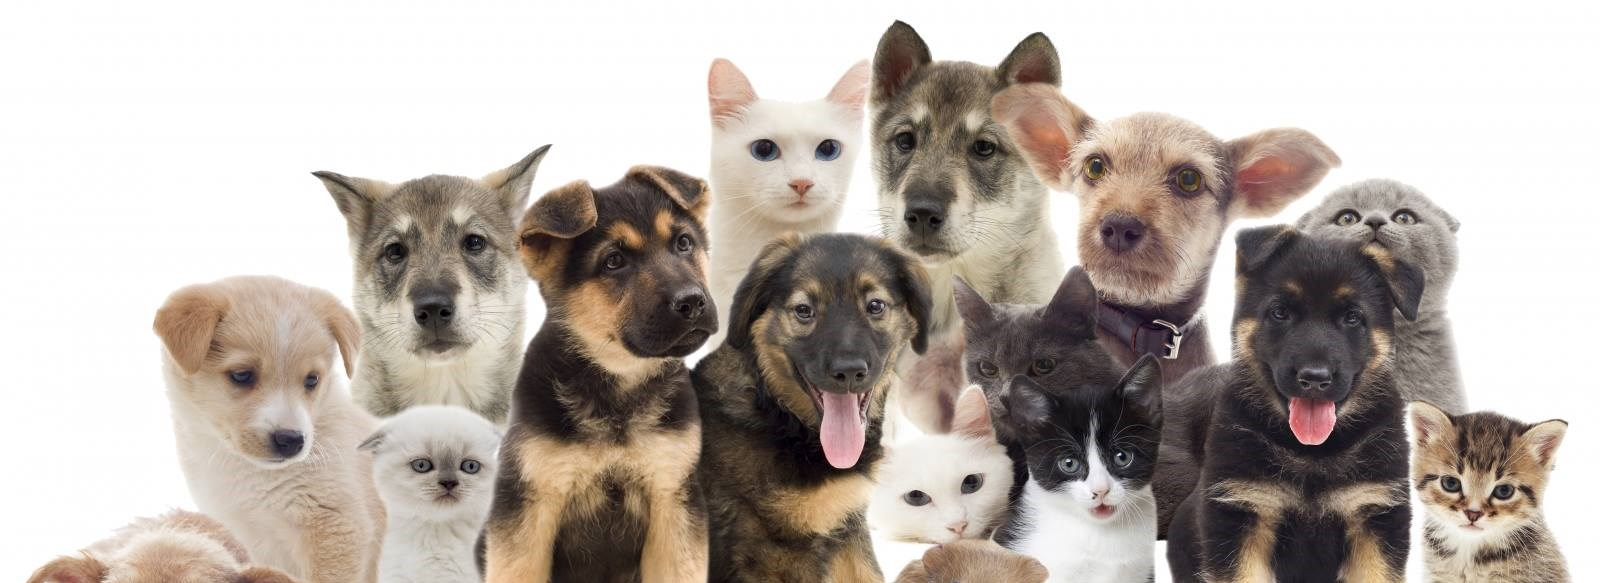 Photo of dogs and cats